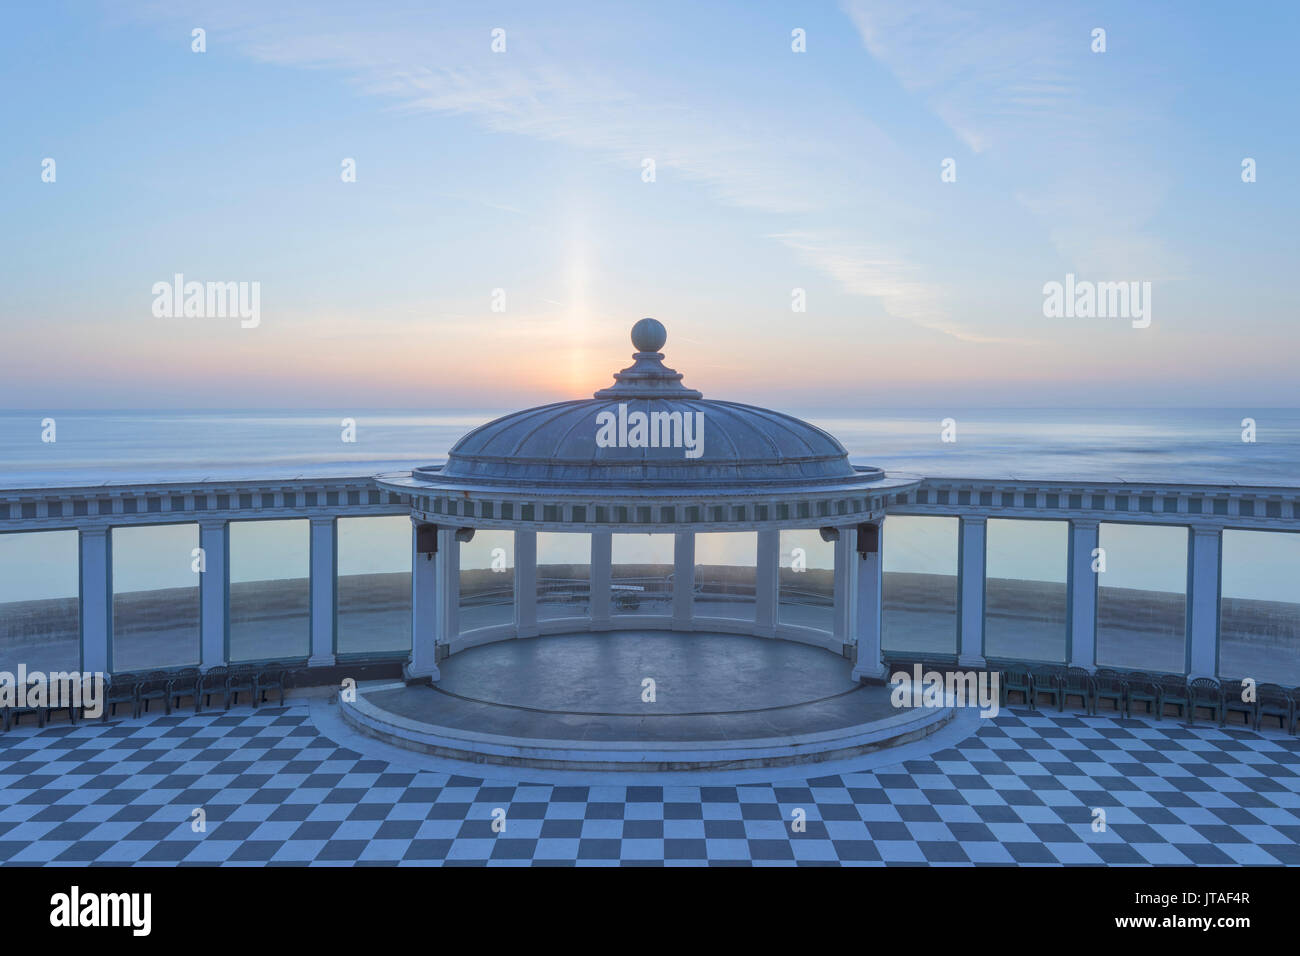 The Spa bandstand and view out to sea at sunrise, South Bay, Scarborough, North Yorkshire, Yorkshire, England, United Kingdom - Stock Image